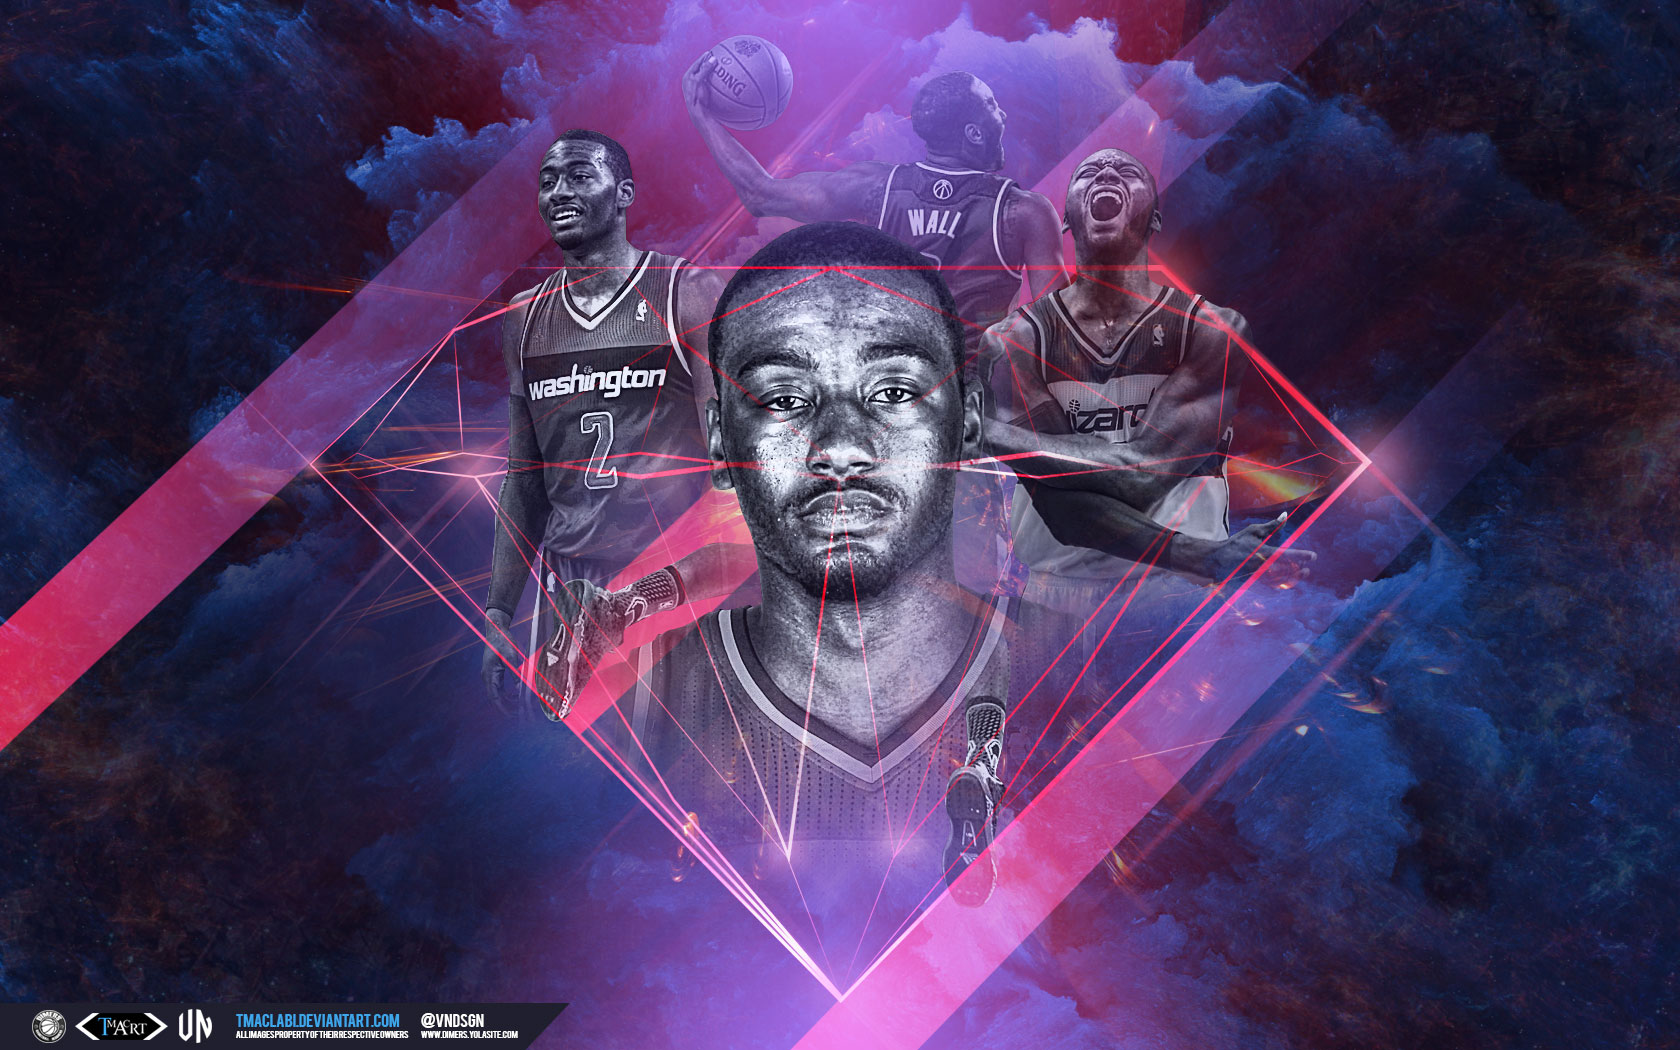 Nba Sports Basketball Washington D The Wizard Movie Wallpapers Wallpapersink Dark Army Wizards Wallpaper High Quality Wallpapers High 1680x1050